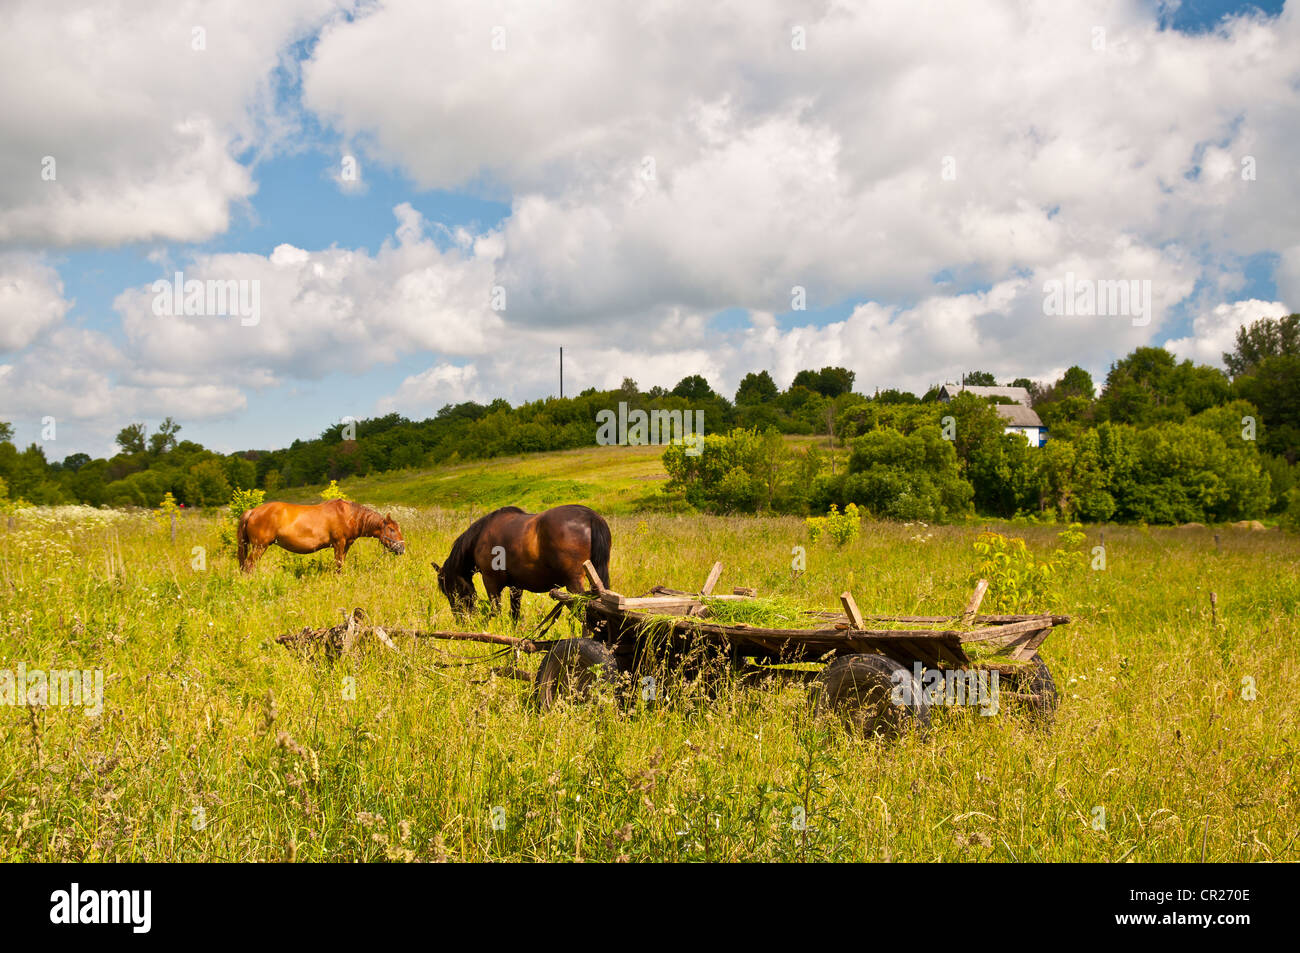 Grazing horses and traditional Ukrainian wagon in the foreground, between Kiev and Chernobyl, Ukraine - Stock Image